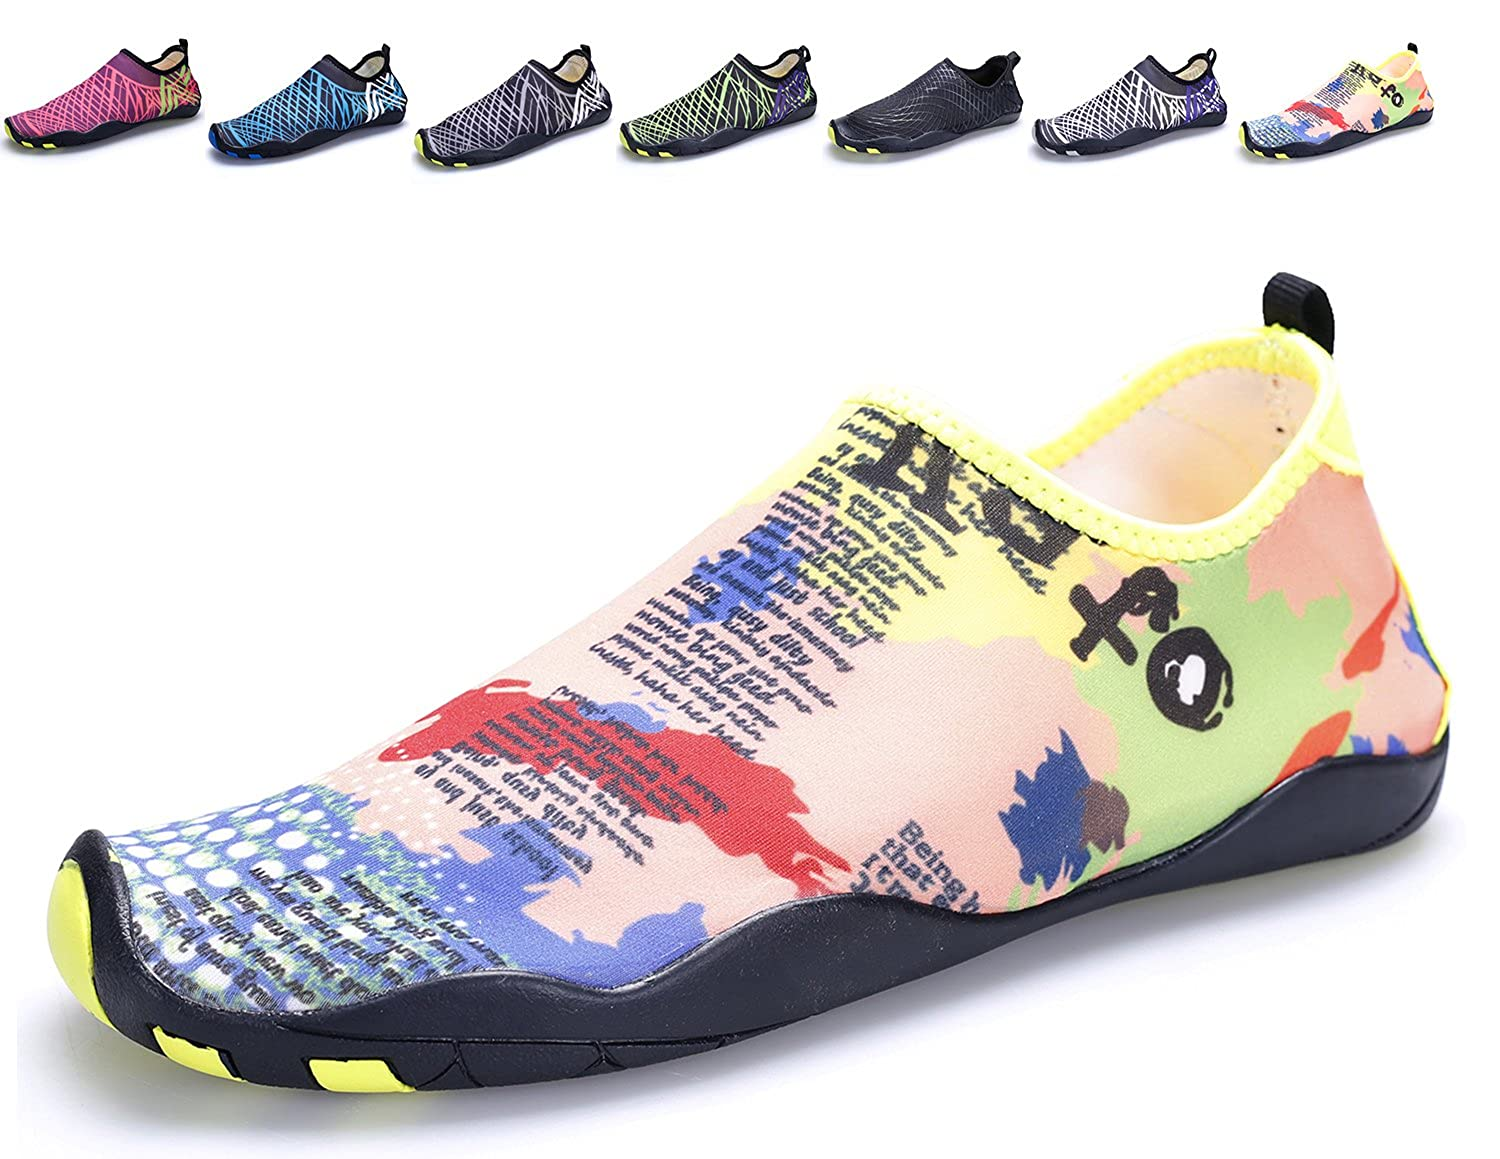 Kitleler Men Women Barefoot Quick-Dry Aqua Water Shoes with Drainage Hole  for Yoga Swimming: Amazon.ca: Shoes & Handbags